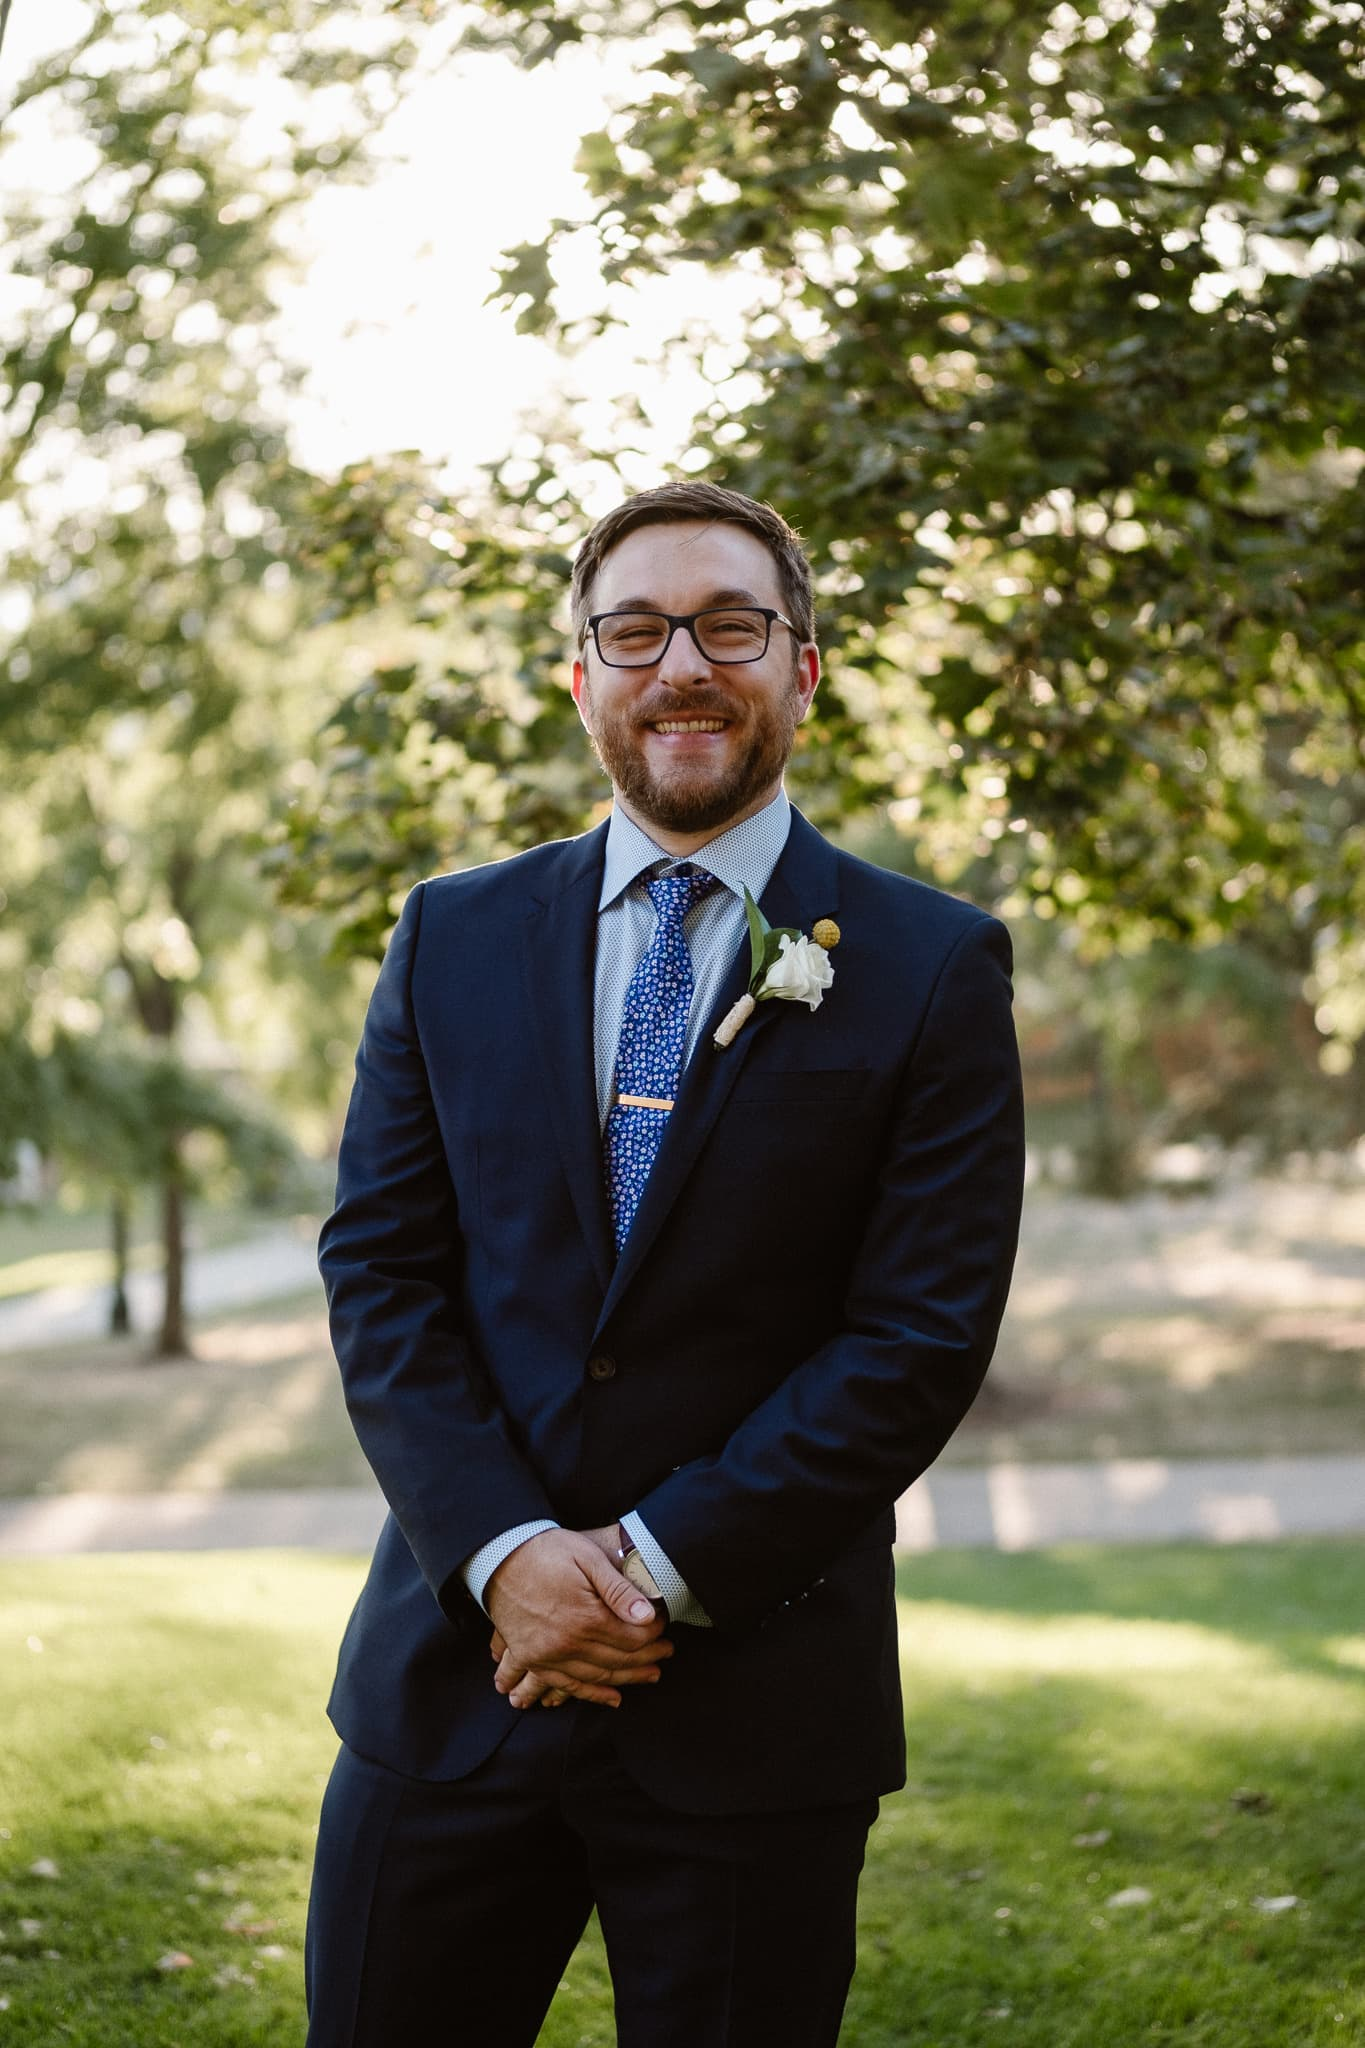 Grant Humphreys Mansion Wedding Photographer, Denver wedding photographer, Colorado wedding photographer, groom portrait, Hugo Boss suit,